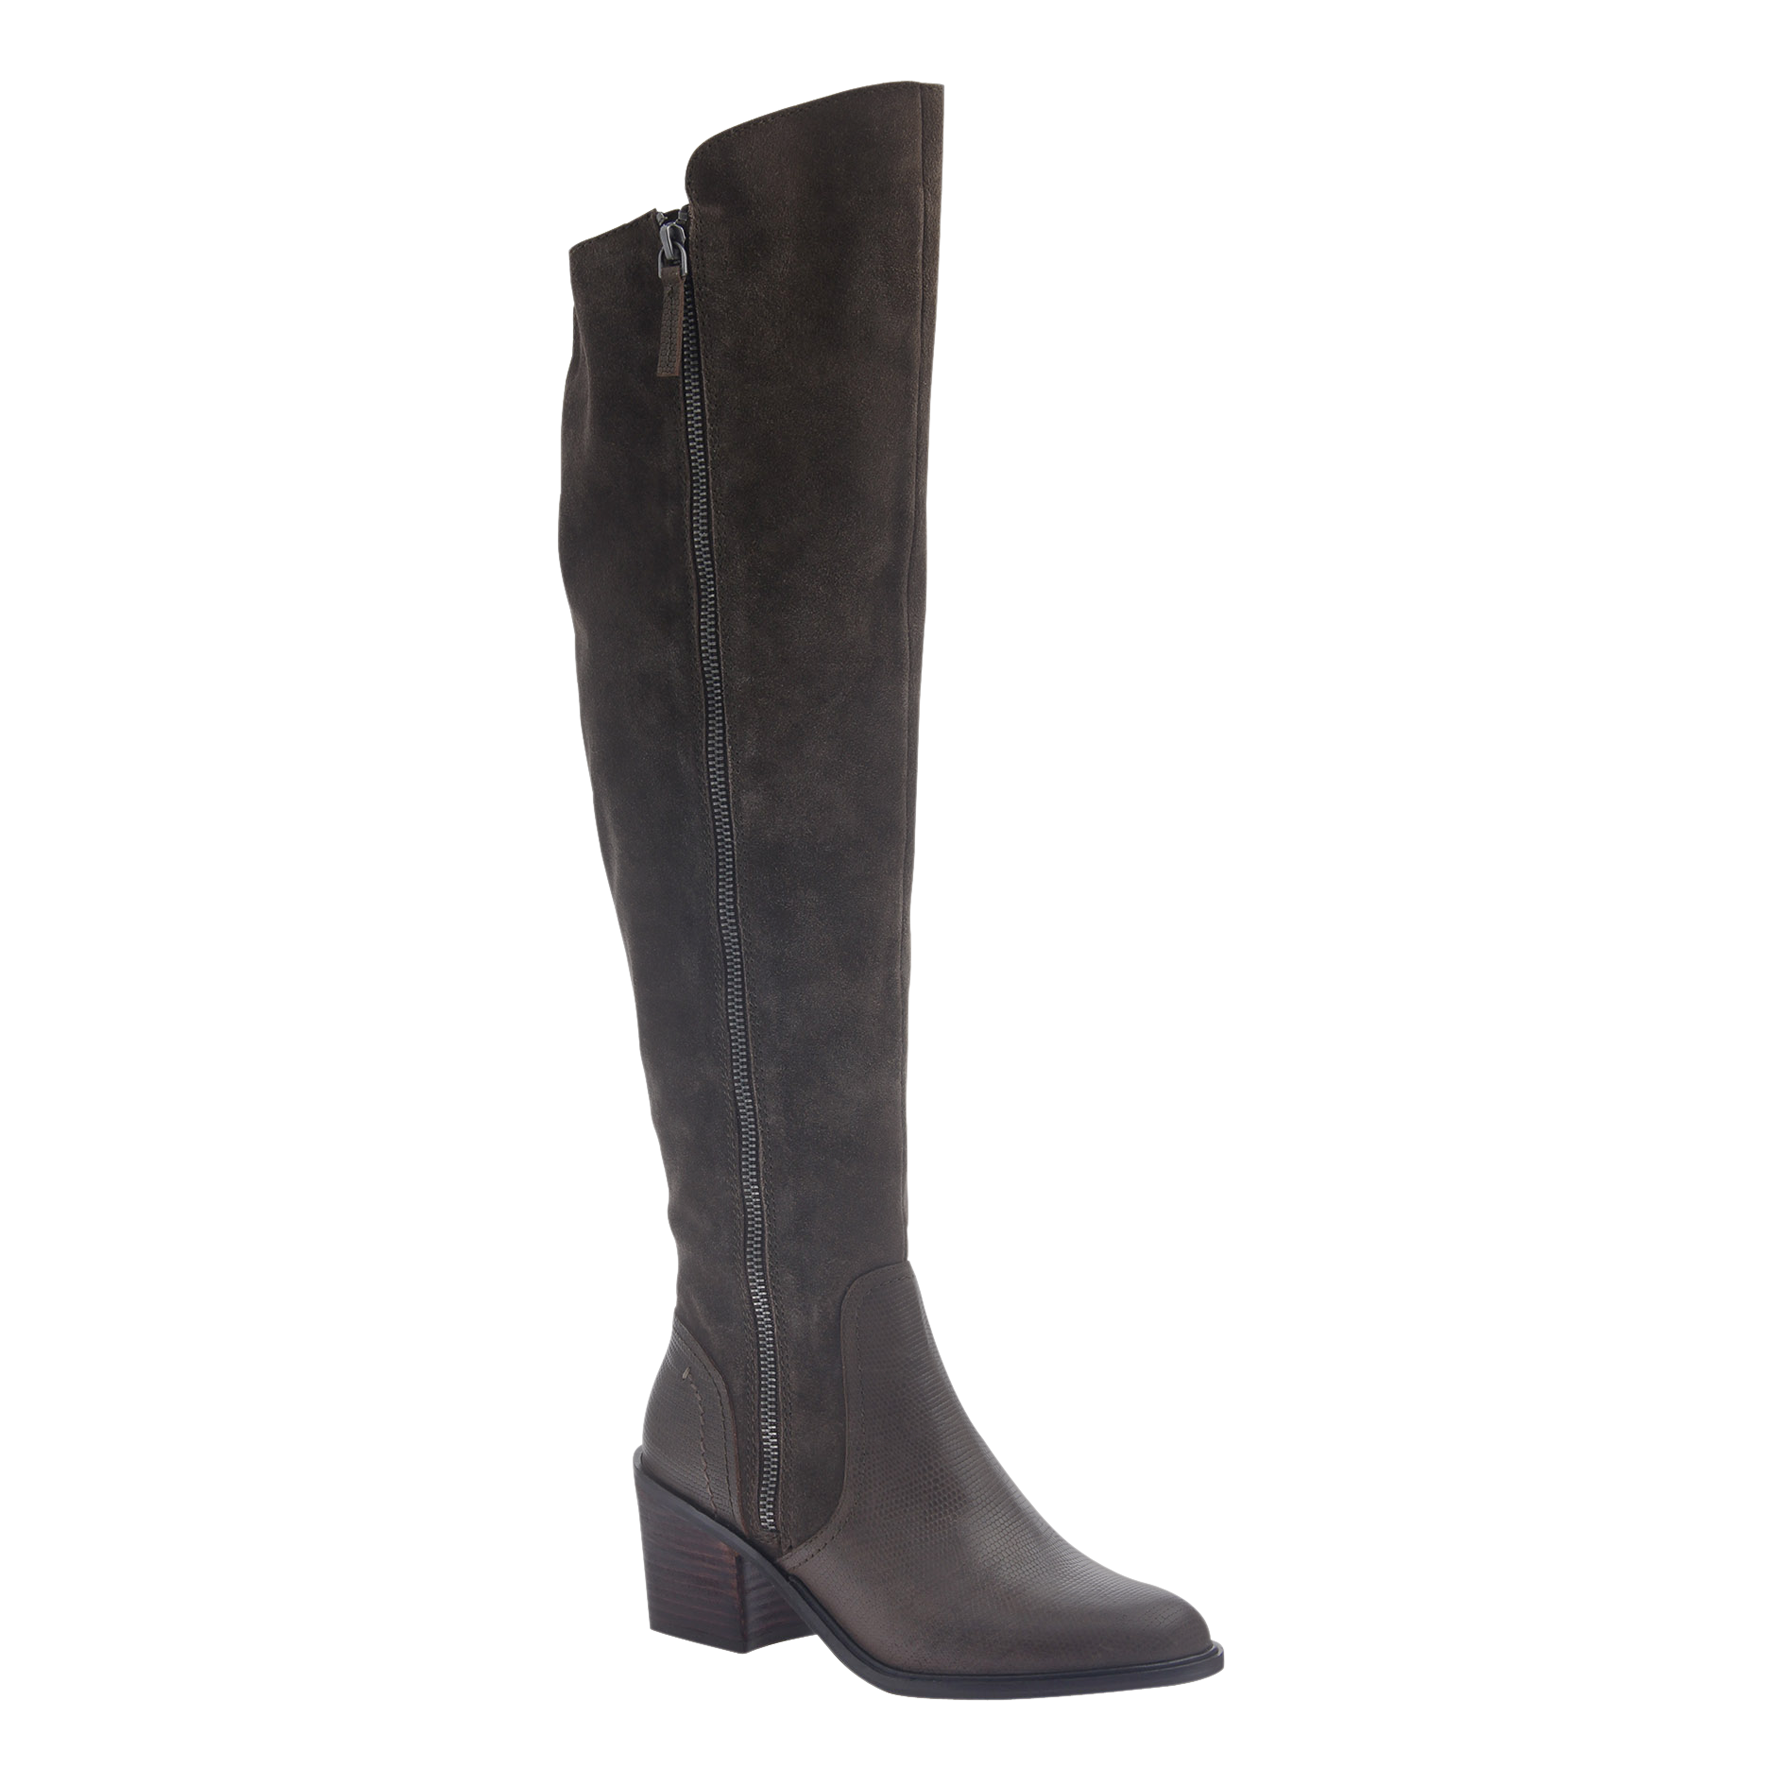 Womens tall over the knee boot Clooney in mint